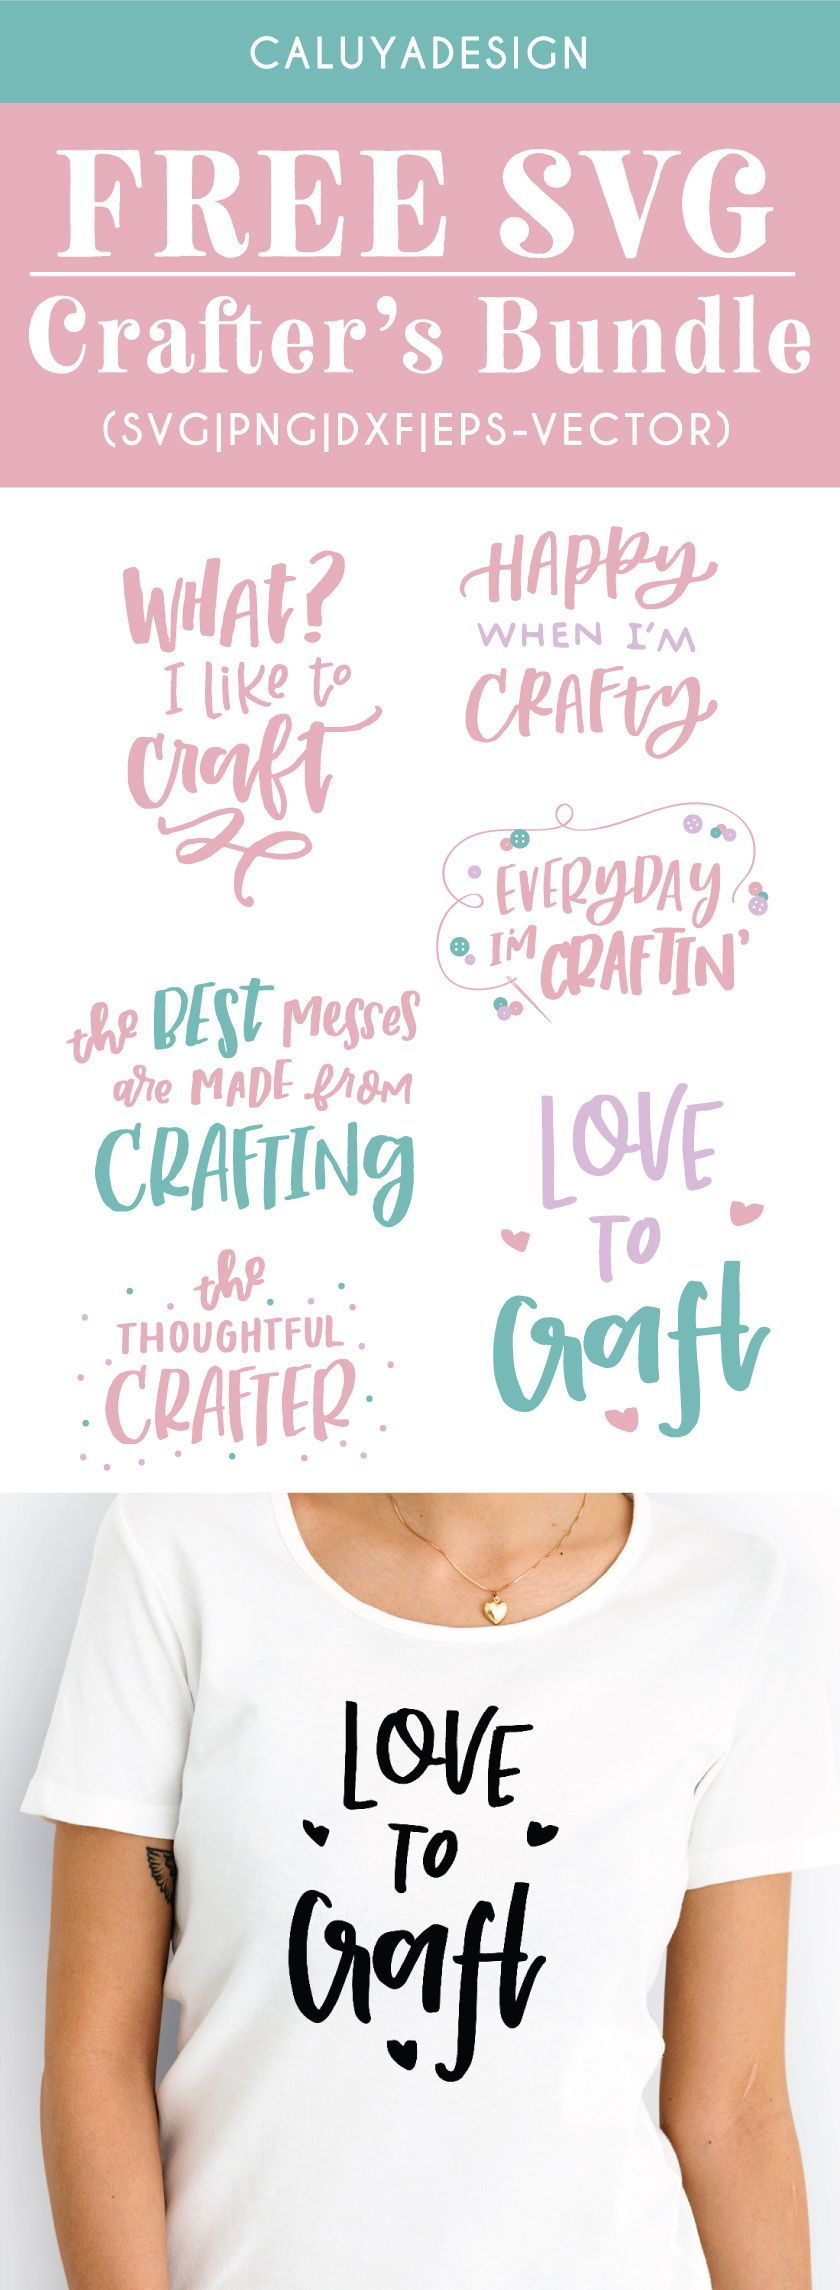 Funny quote Clip Art Svg Dxf Eps Happy Crafter Svg Crafting Svg cut file Files for Cricut or Silhouette Crafters gonna craft SVG Design